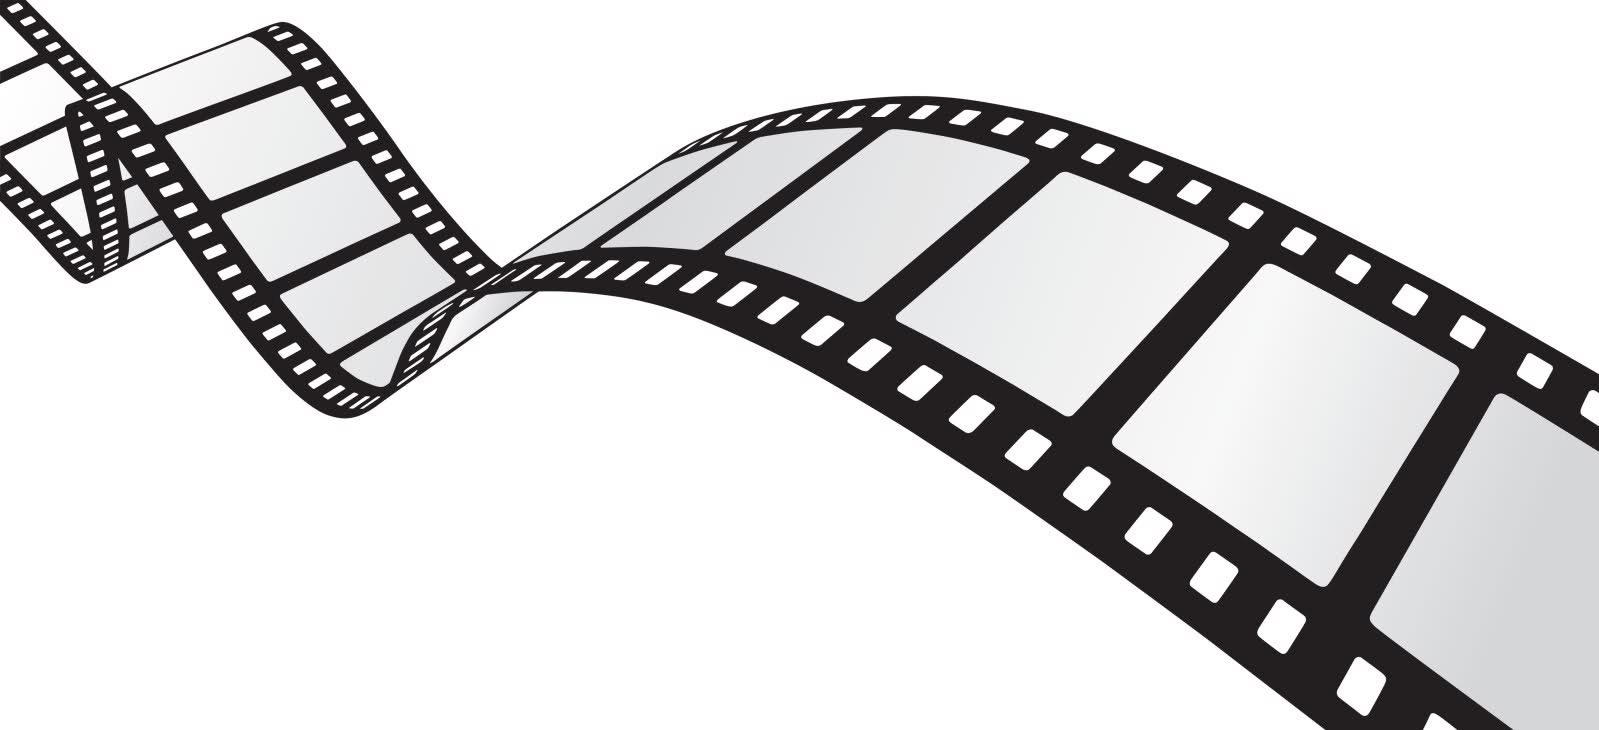 Lighting clipart movie. Review lights bored out